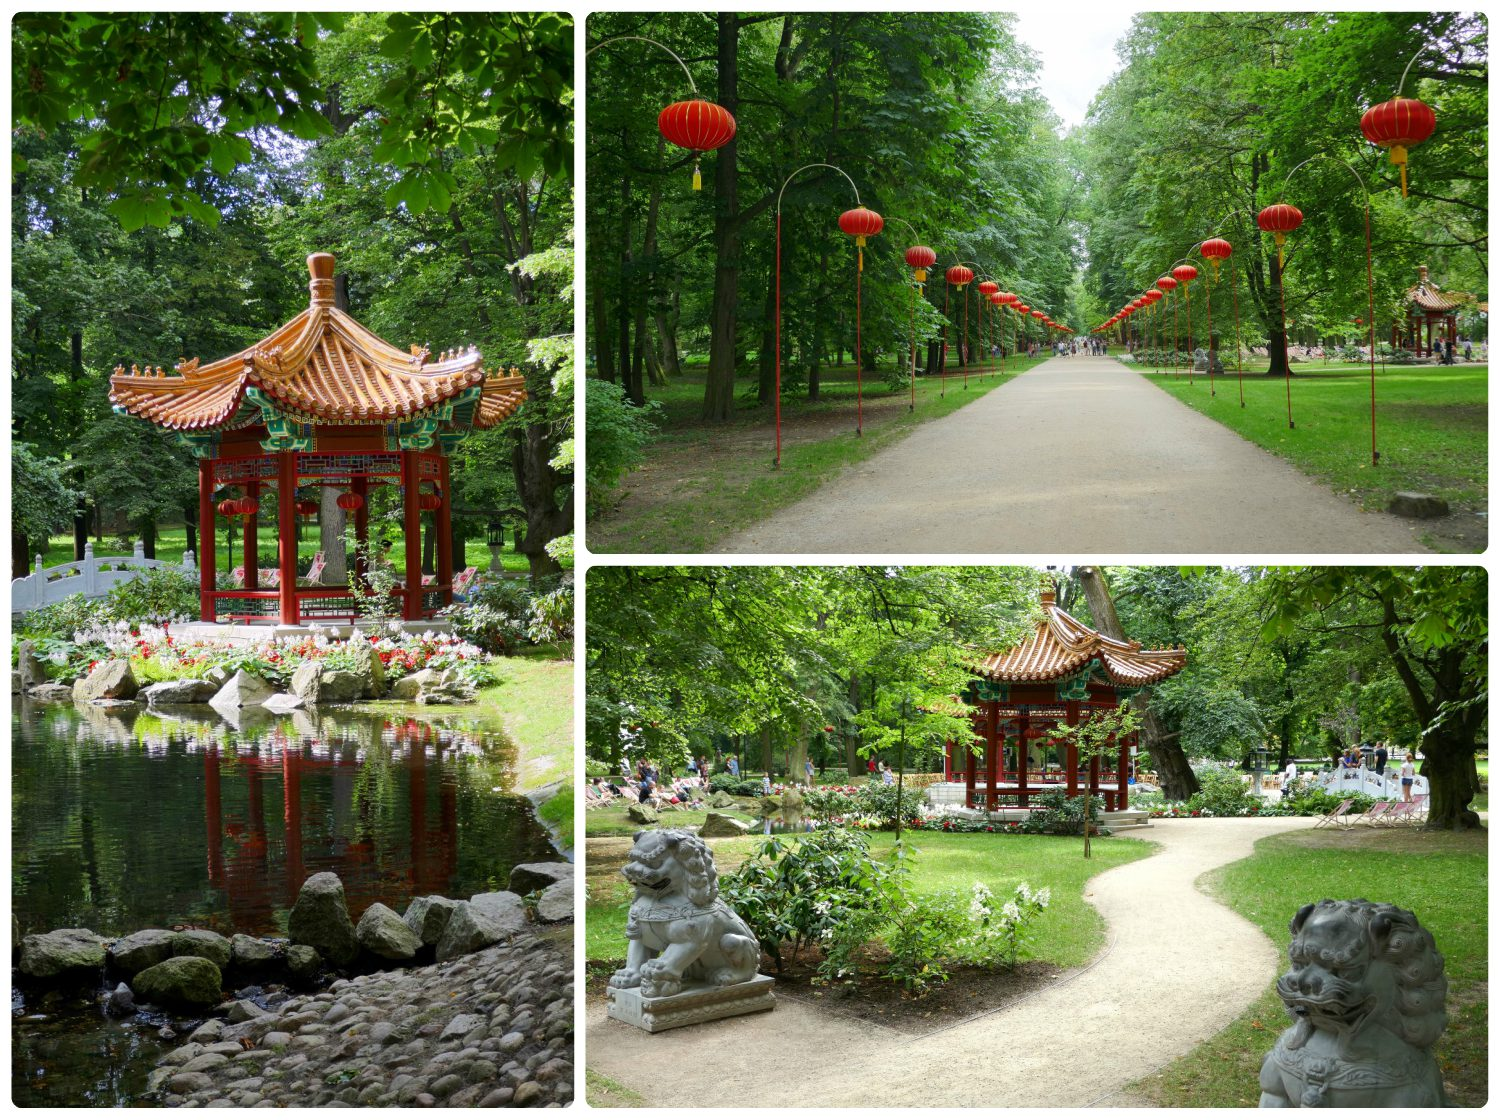 The Chinese Garden in Lazienki Park was enchanting!